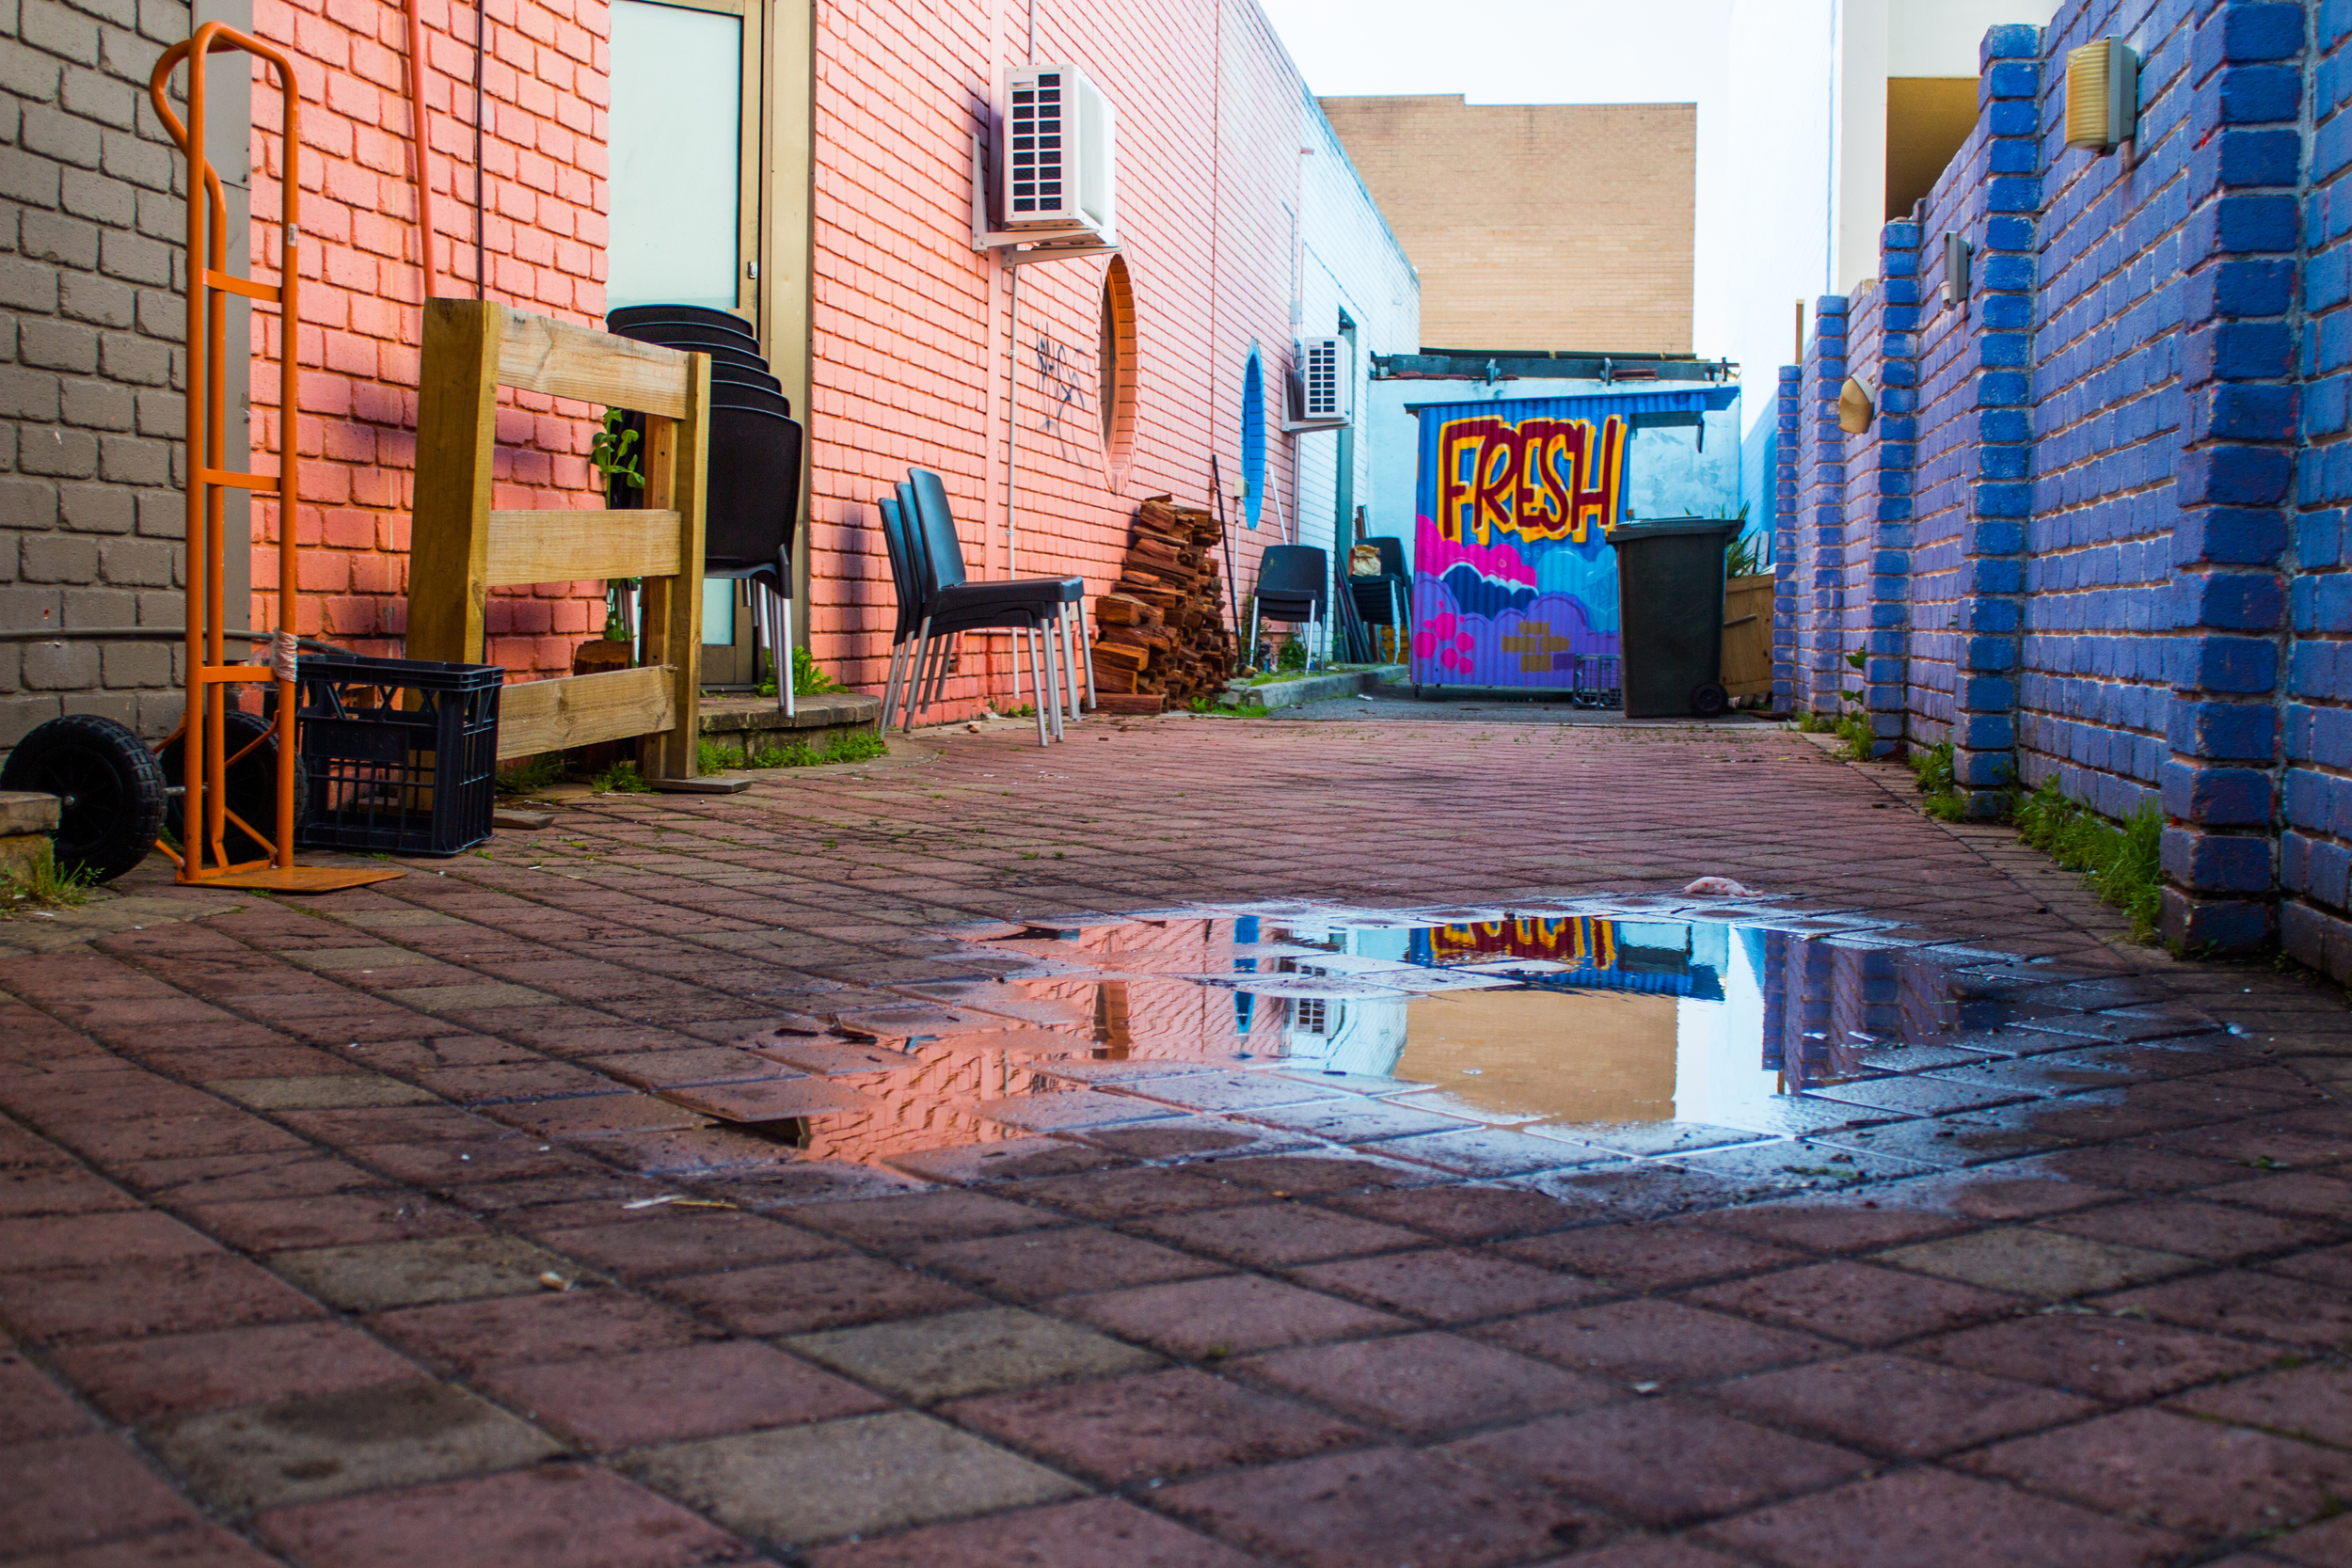 F-R-E-S-H: Reflections in puddles are the benefits of rain